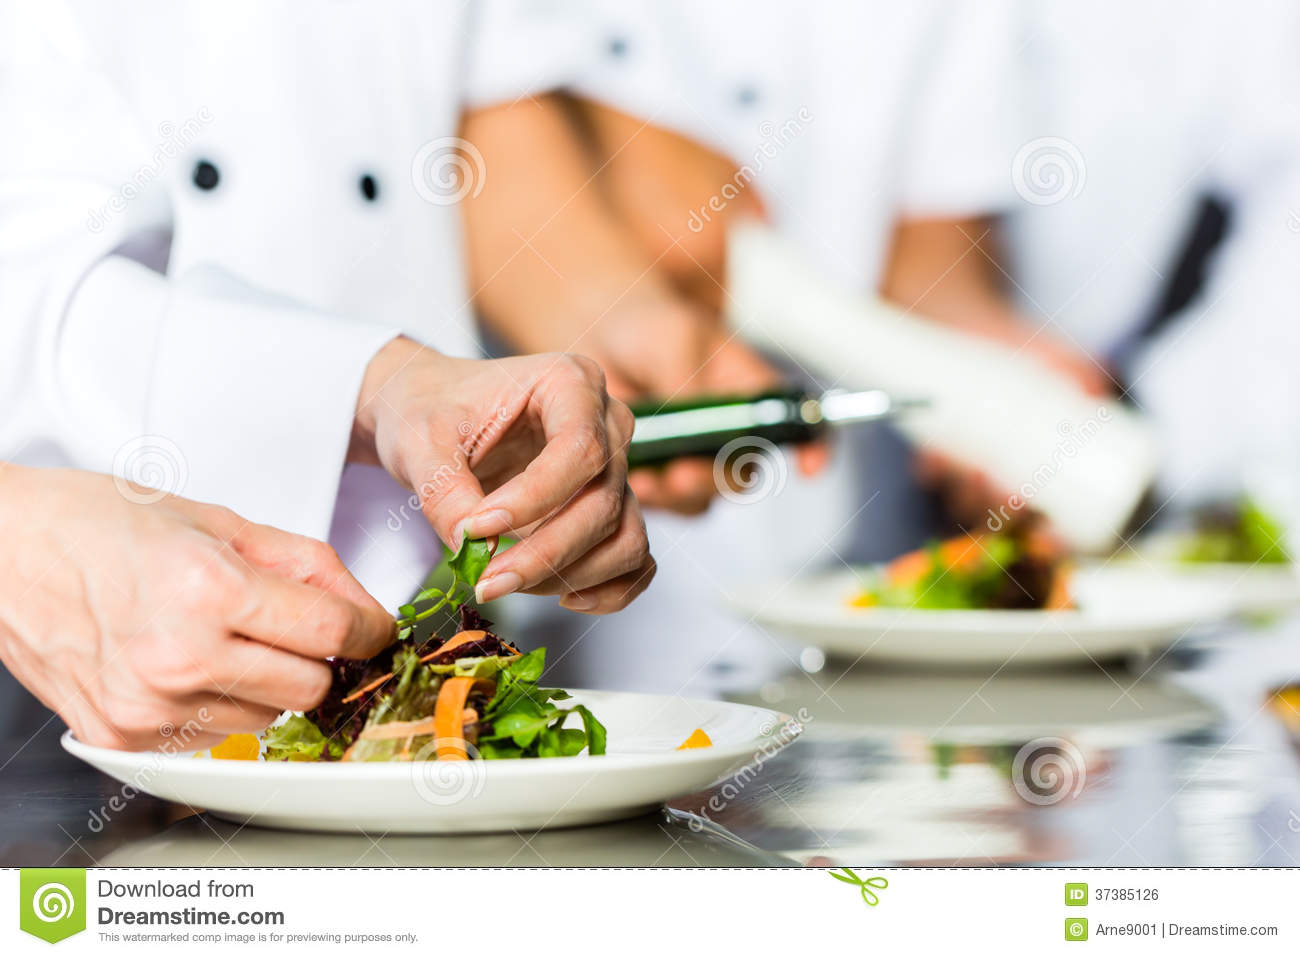 Restaurant Kitchen Chefs chef stock photos, images, & pictures - 140,864 images